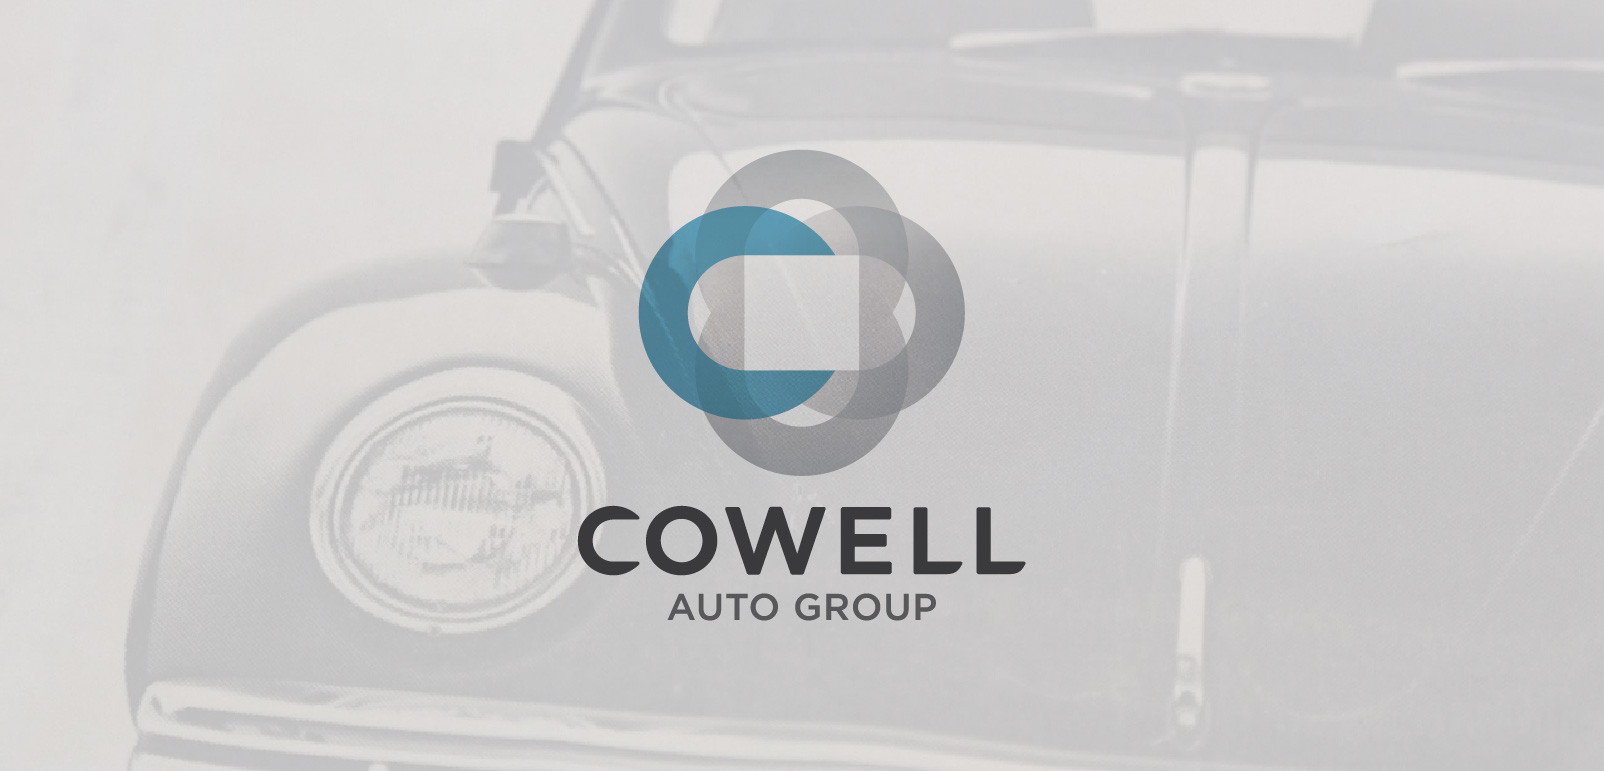 Cowell Auto Group